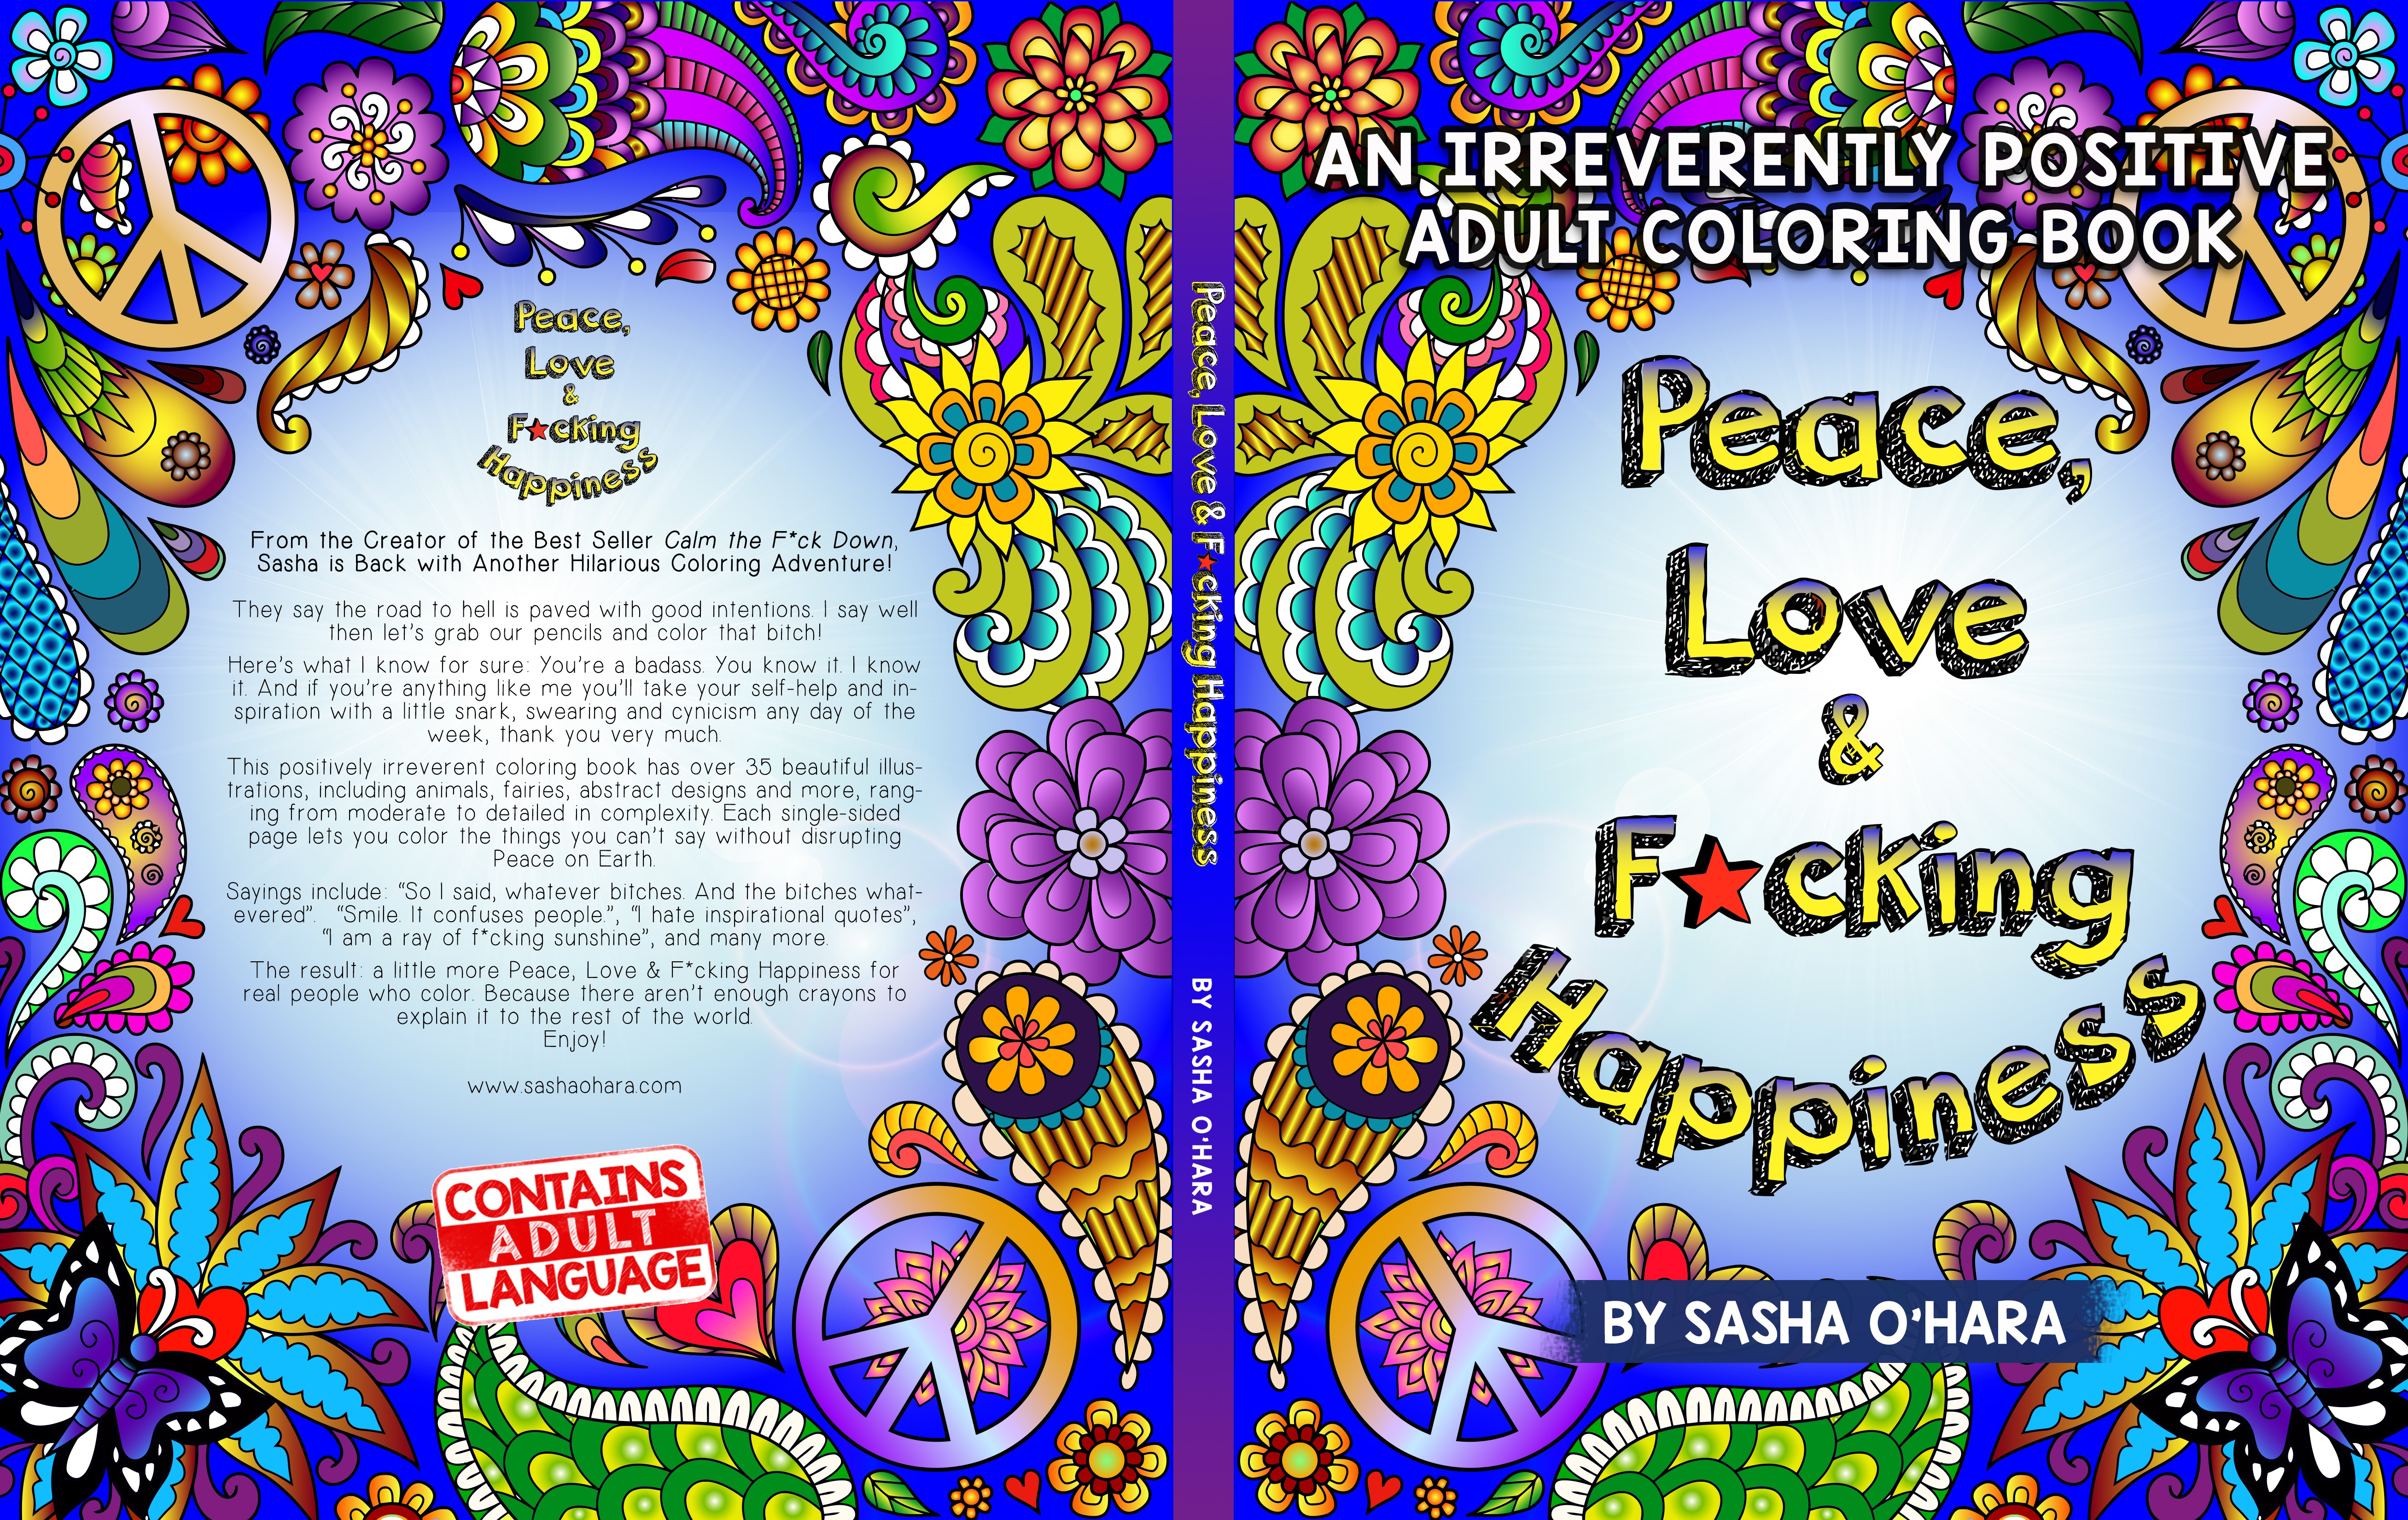 Adult Coloring Book Needs Attention Grabbing yet Soothing Cover